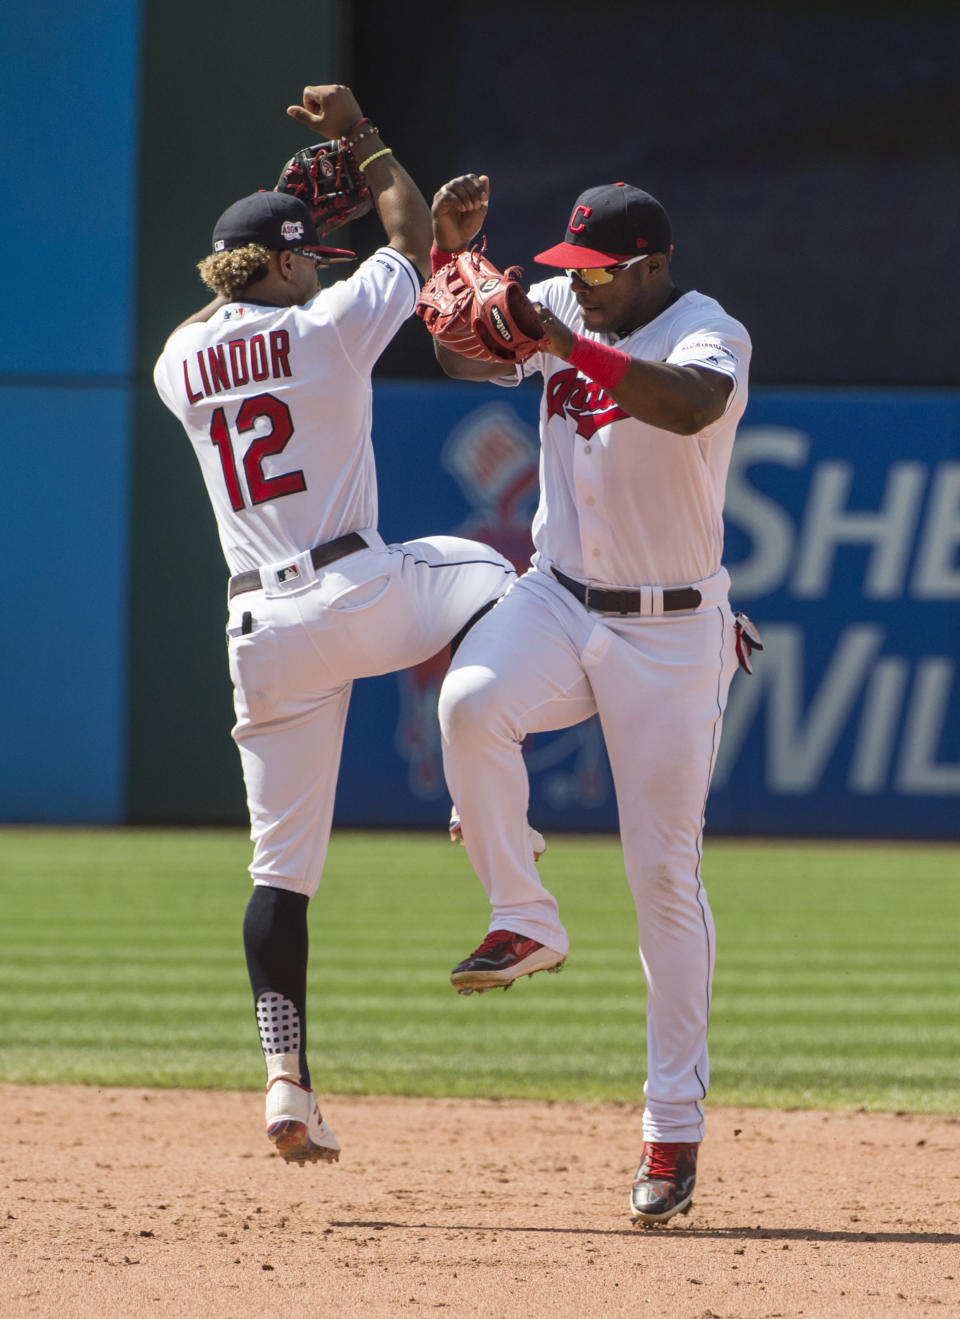 Cleveland Indians' Francisco Lindor and Yasiel Puig celebrate the Indians 2-0 win over the Texas Rangers at the end of the first game of a baseball doubleheader in Cleveland, Wednesday, Aug. 7, 2019. (AP Photo/Phil Long)